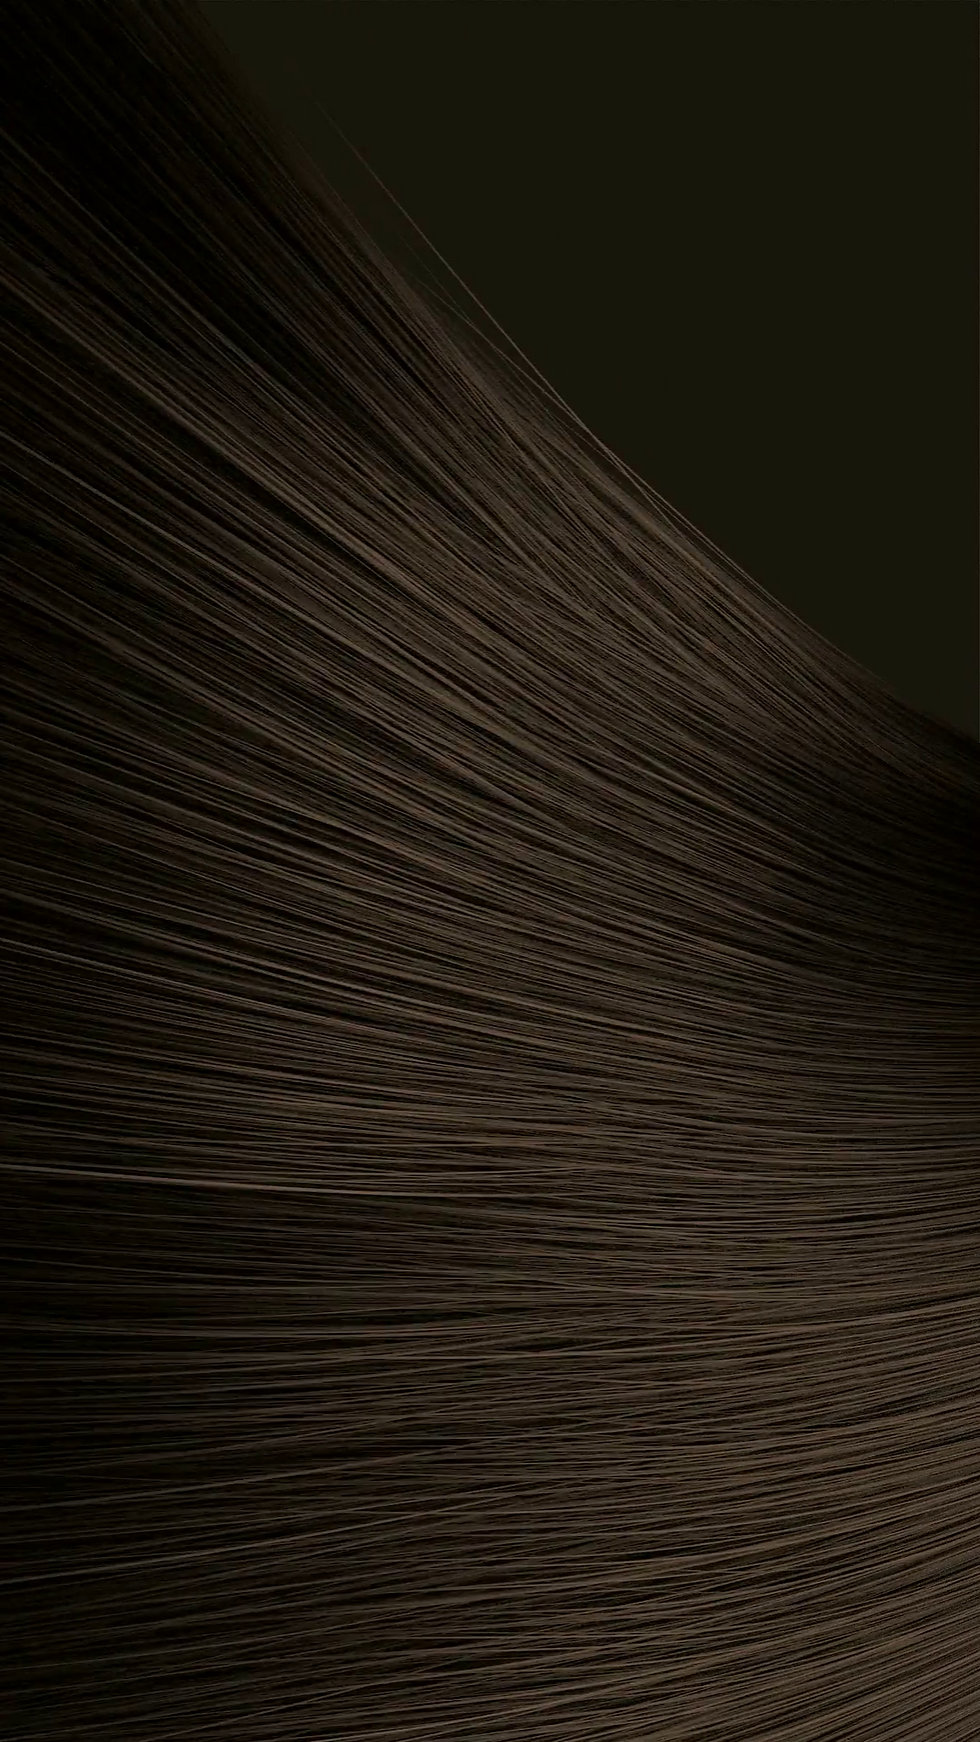 a-bunch-of-dark-brown-hair-blowing-in-a-breeze-on-an-a-dark-brown-background_e1lwymwjwl__F0000 (1)_e